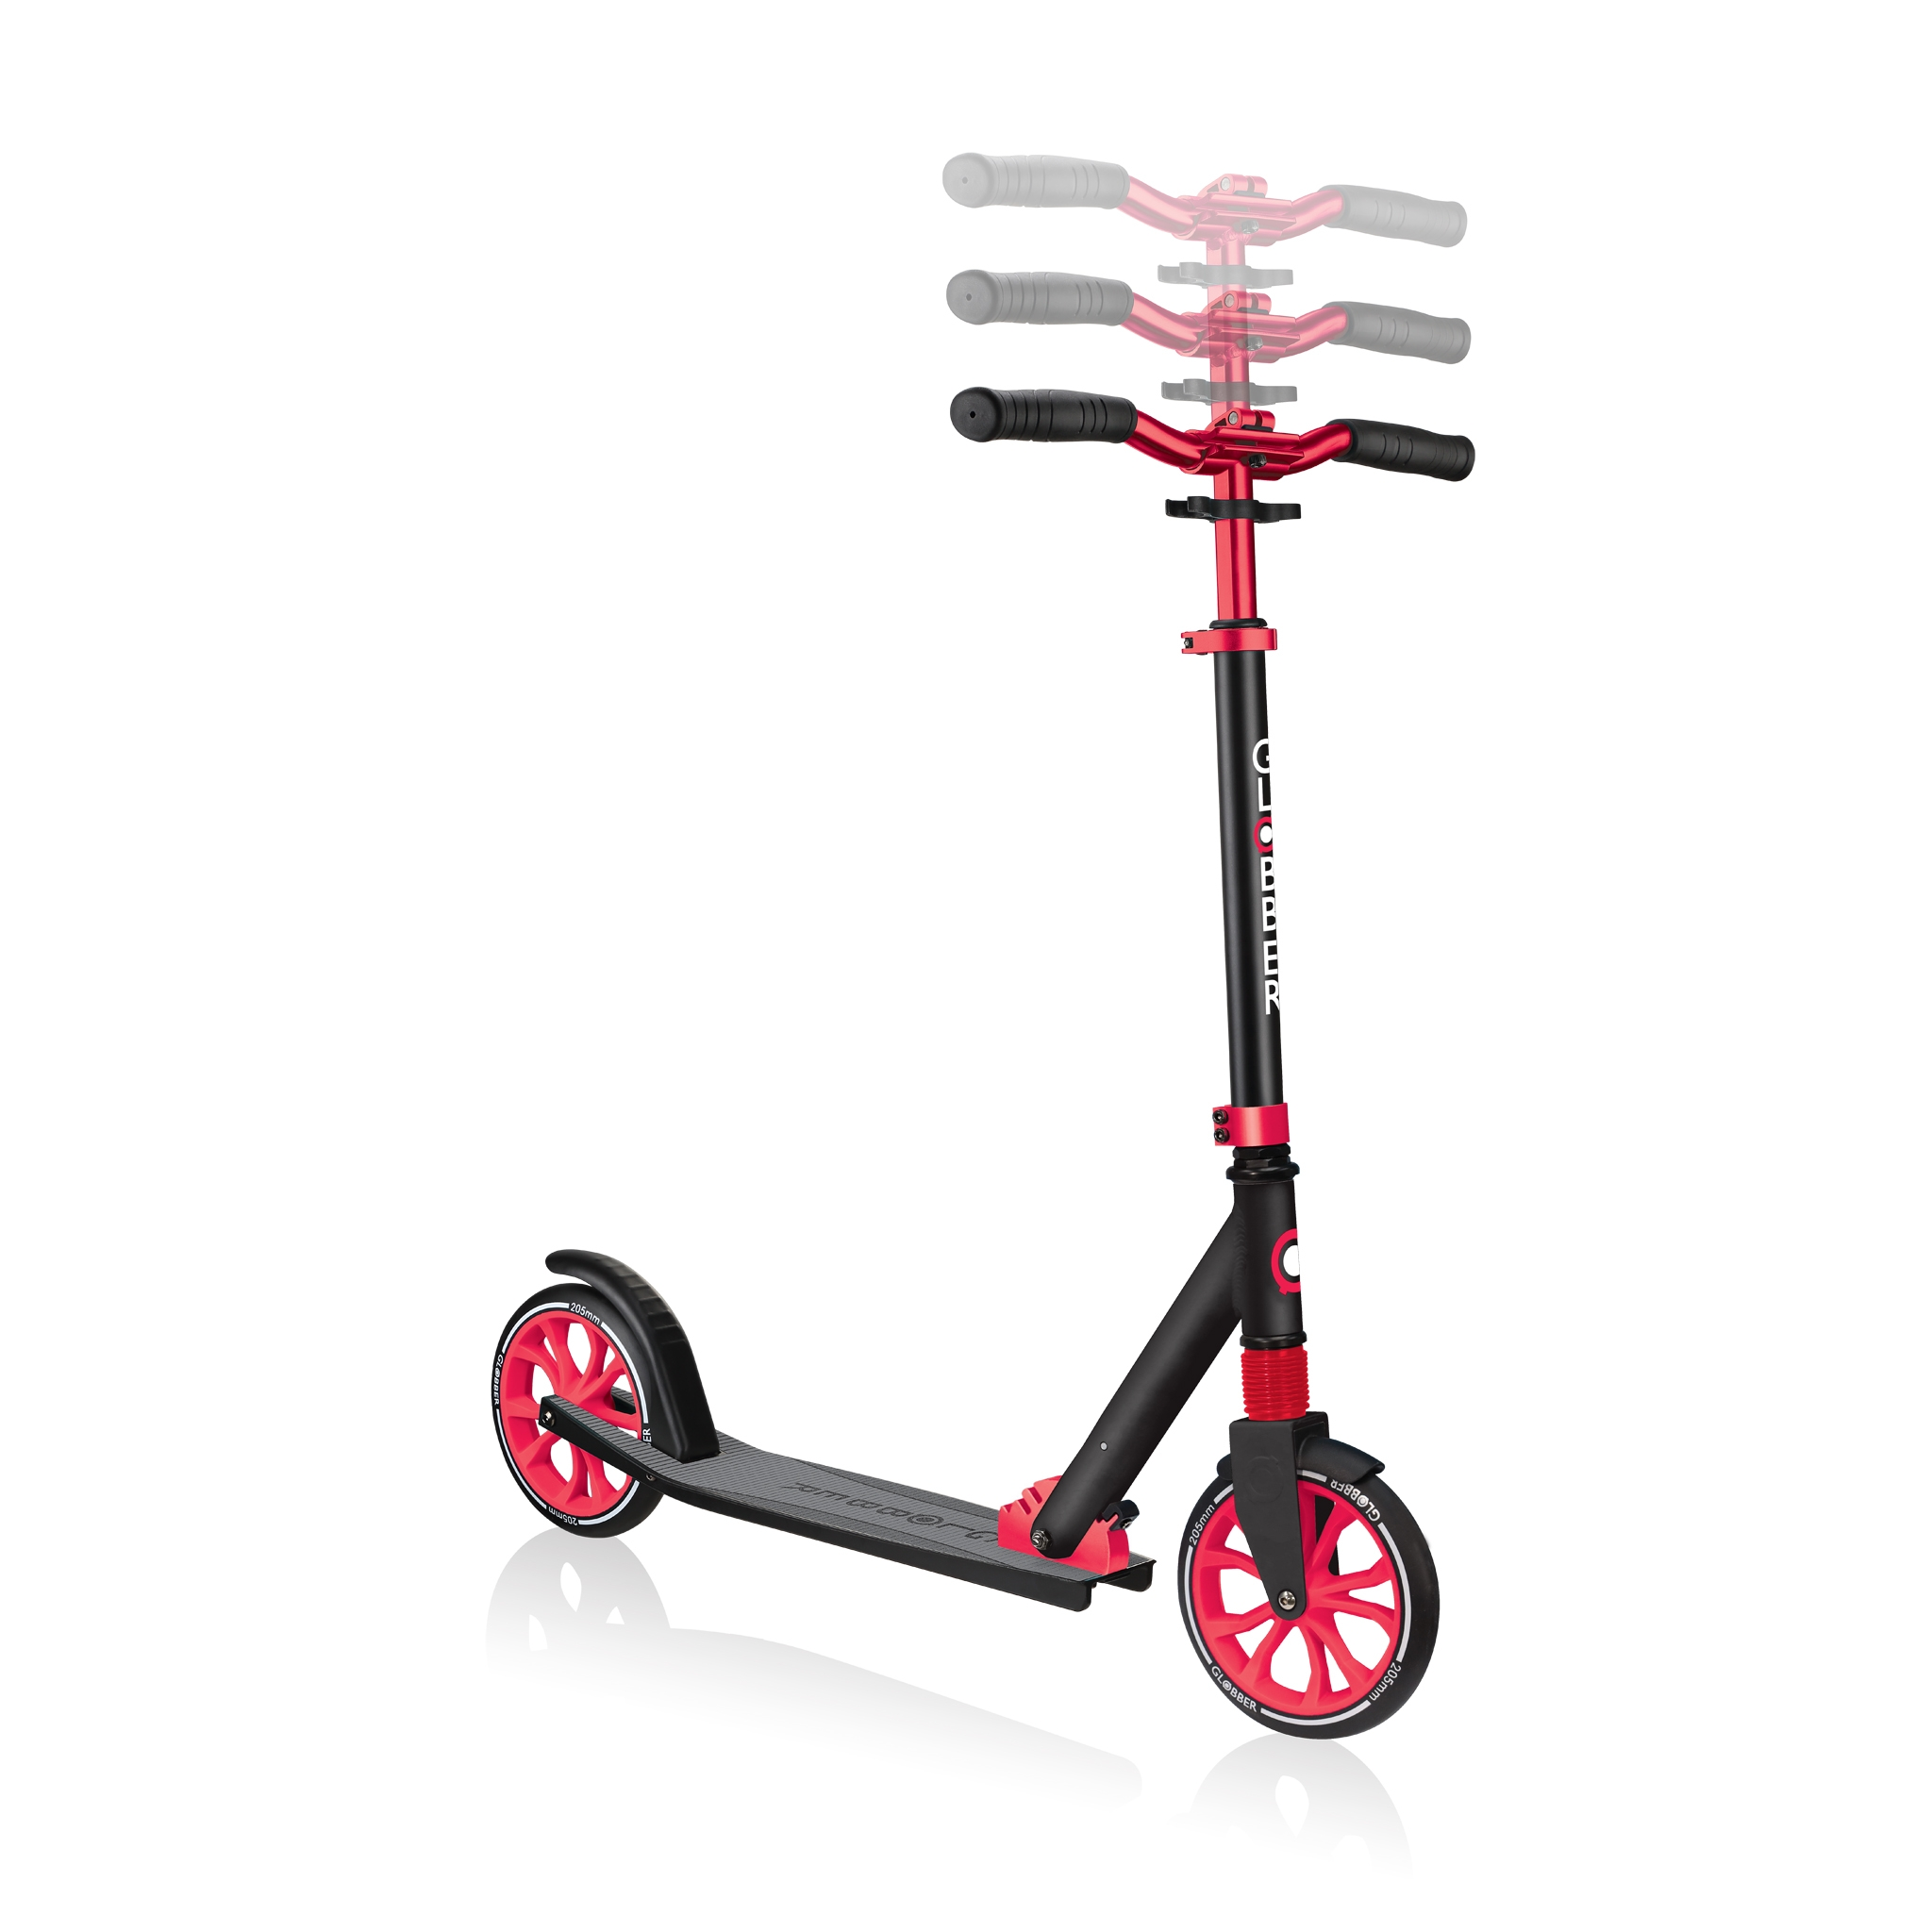 Globber-NL-205-205mm-big-wheel-scooter-for-kids-3-height-adjustable-scooter-t-bar 2